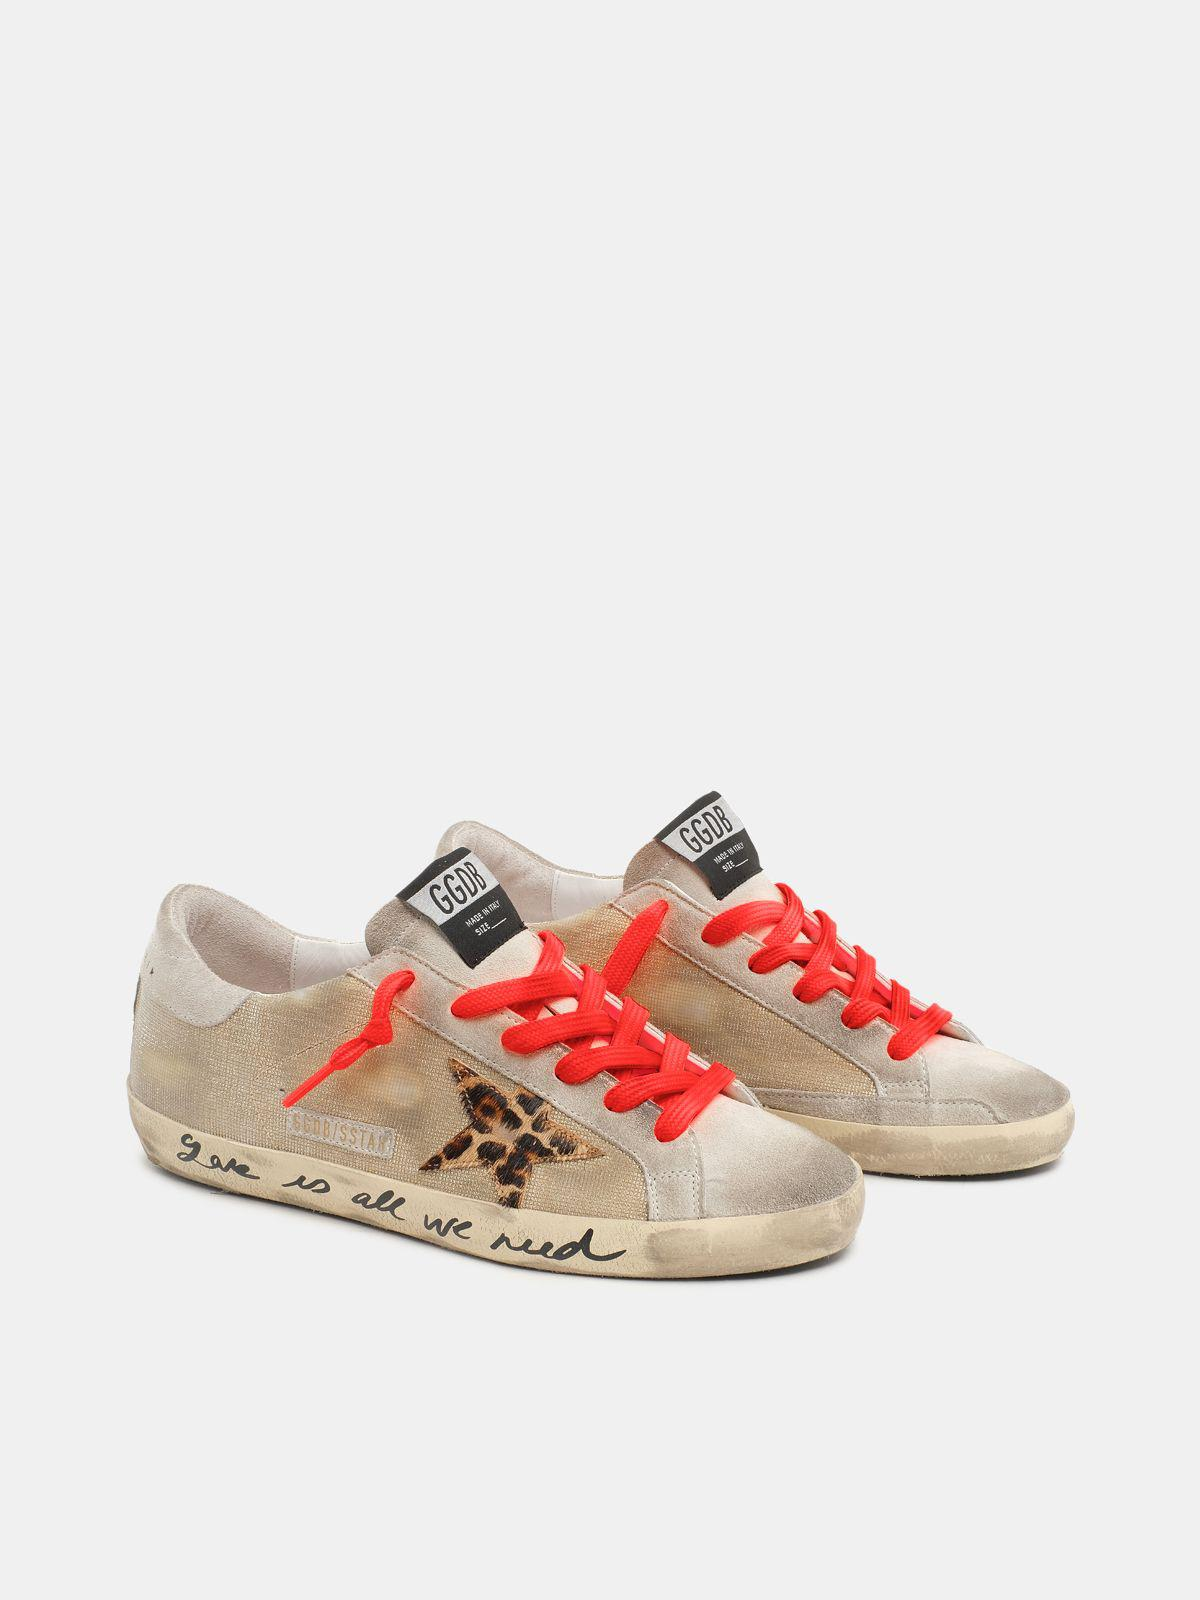 Golden Super-Star sneakers with checkered pattern and hand lettering on the foxing 2